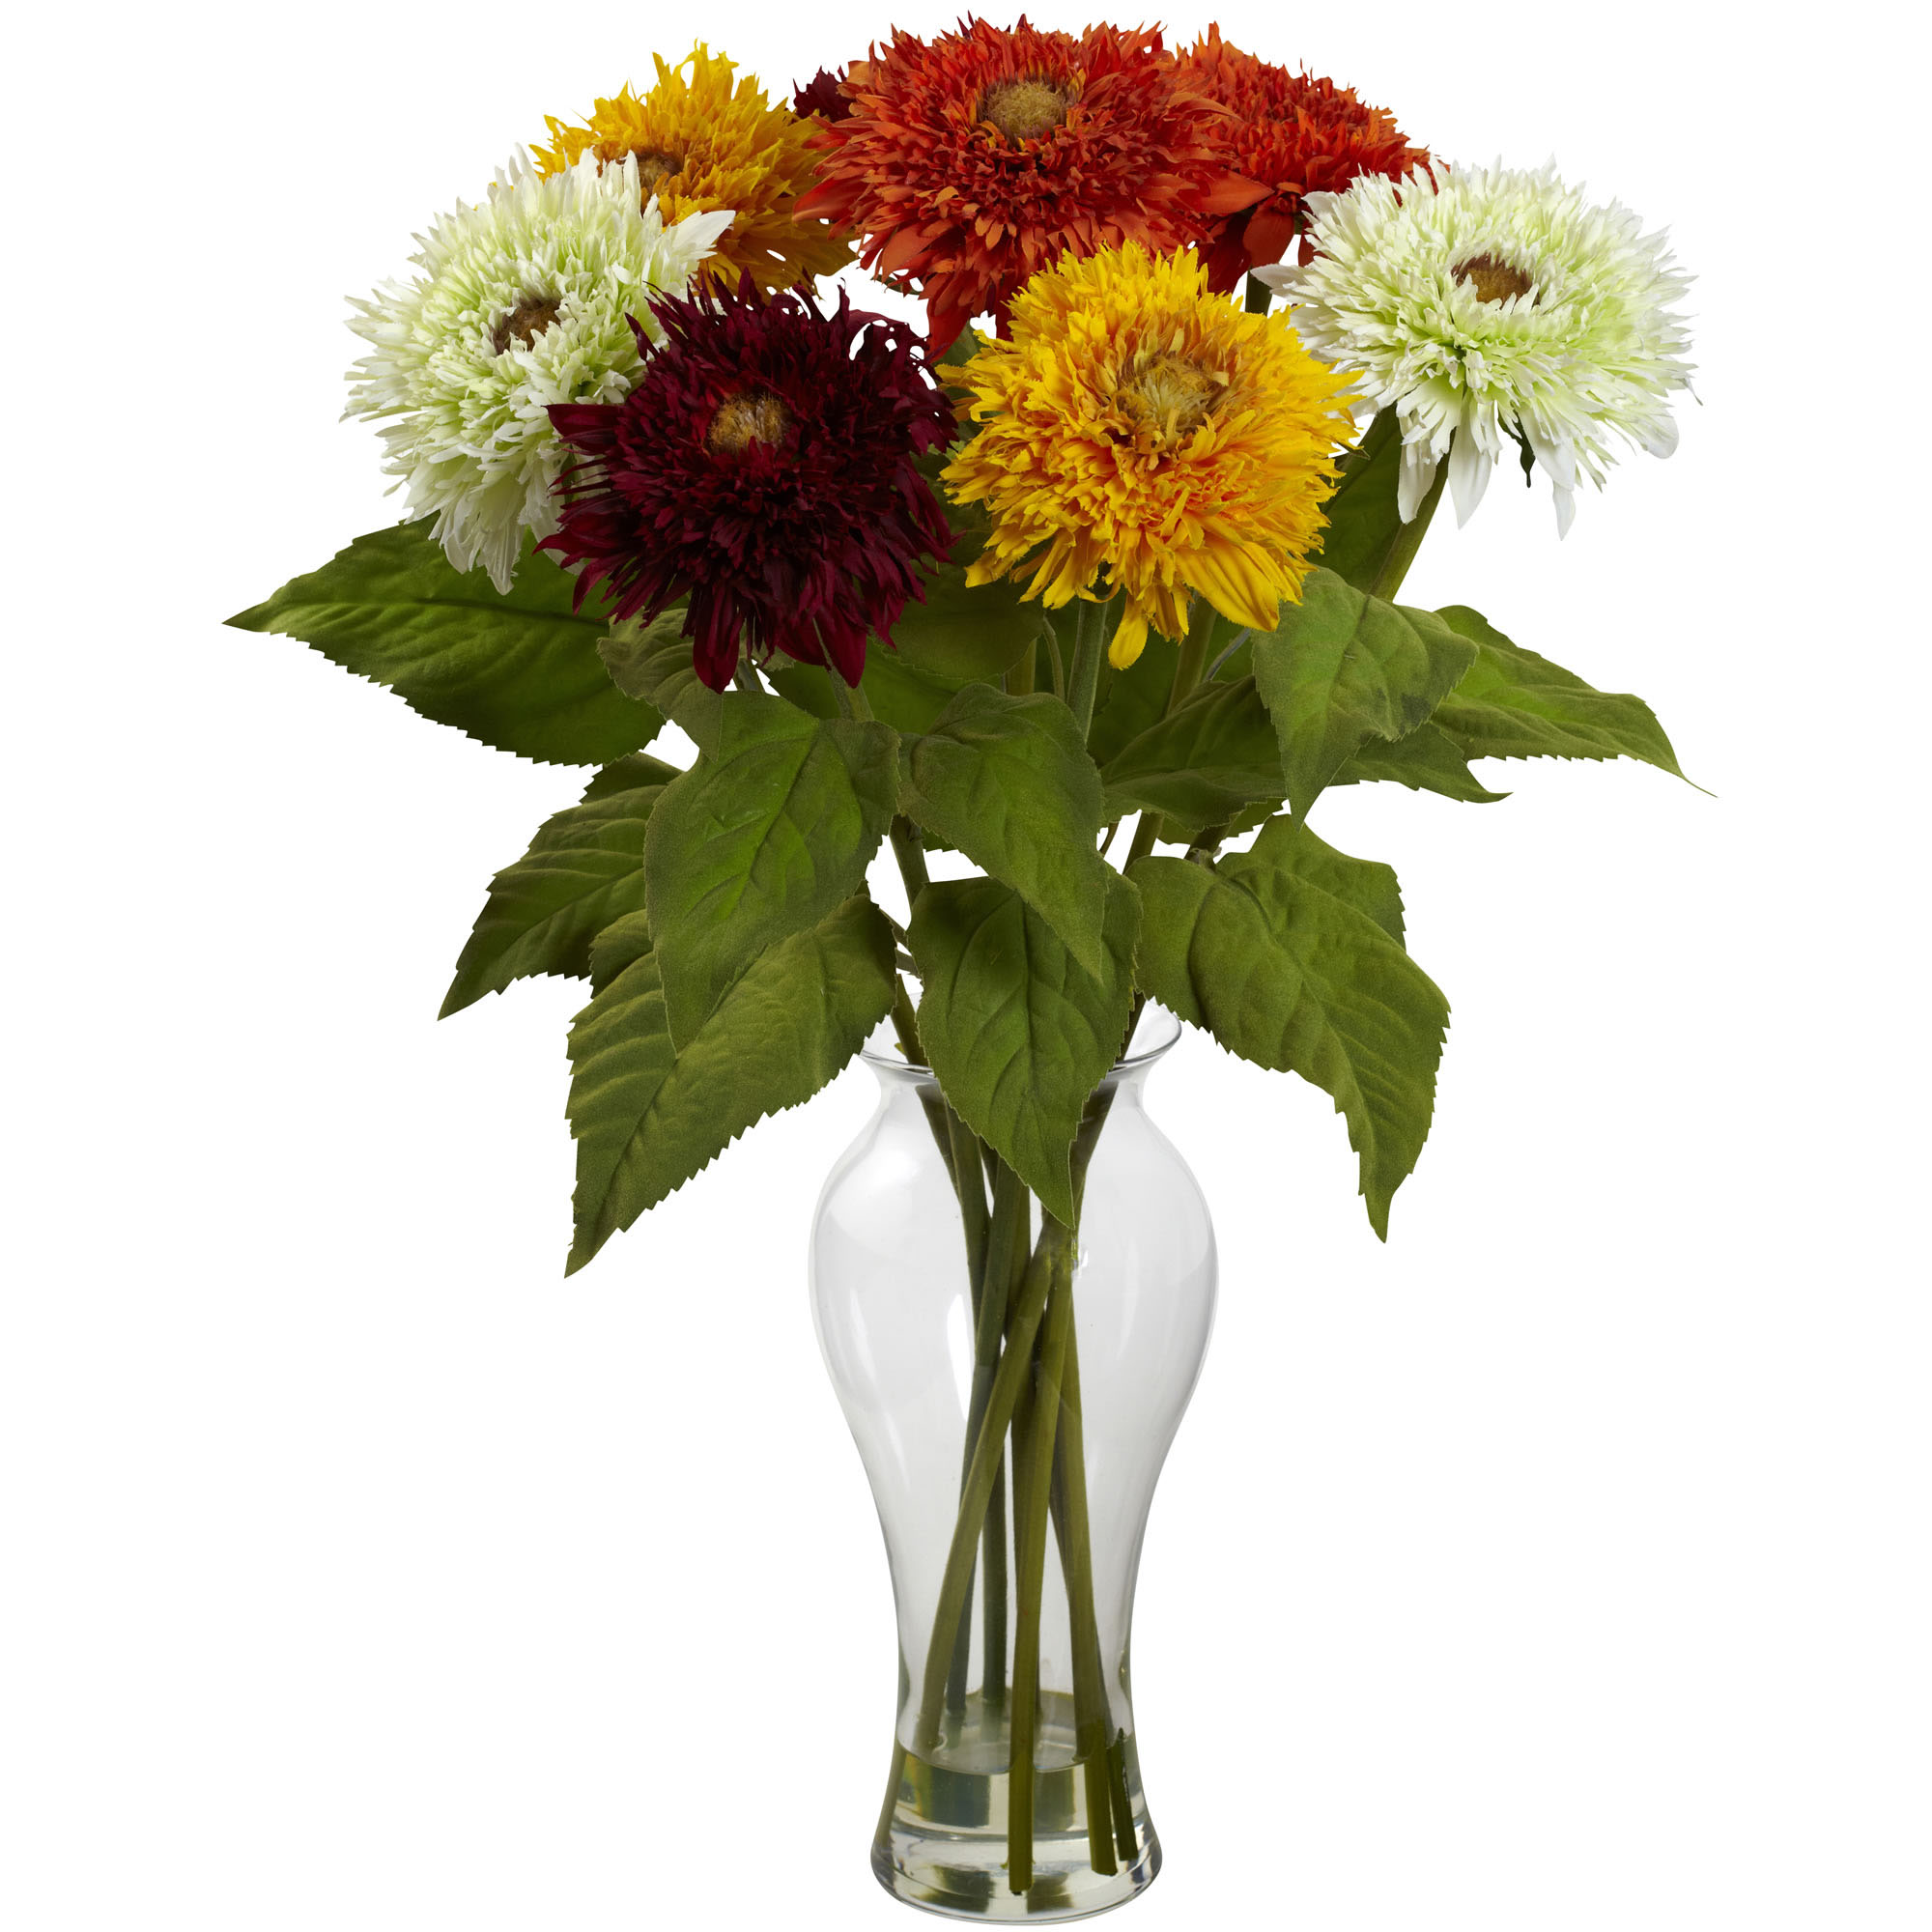 Inch silk sunflower arrangement in decorative vase